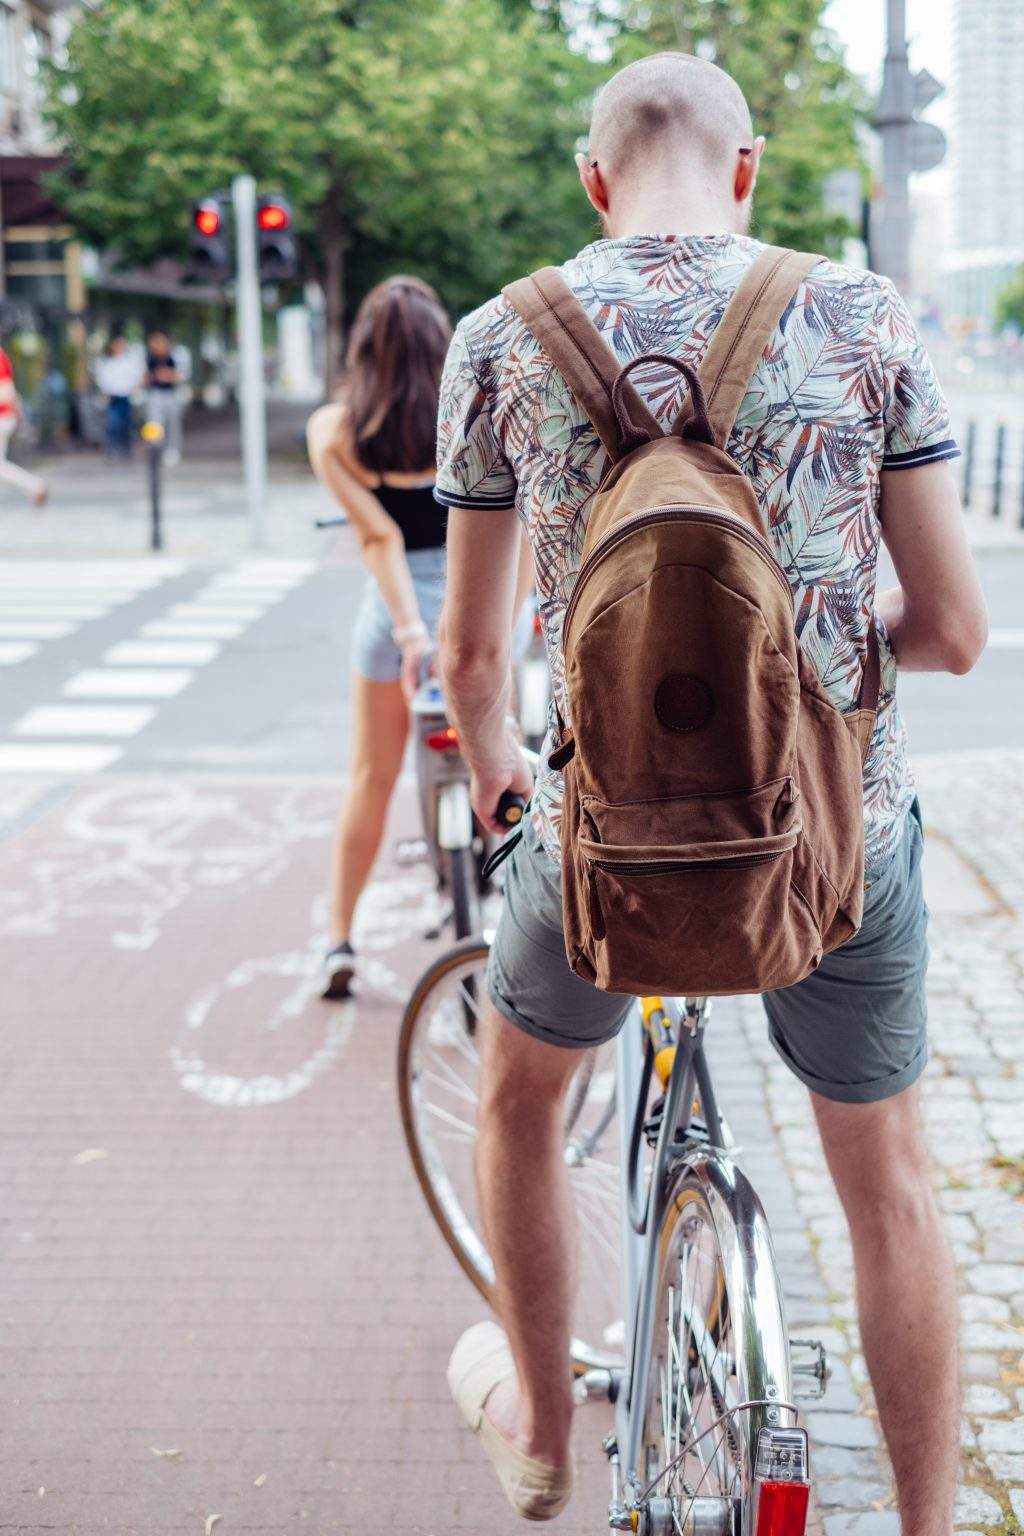 Cyclists waiting for a green light at the road zebra crossing - free stock photo